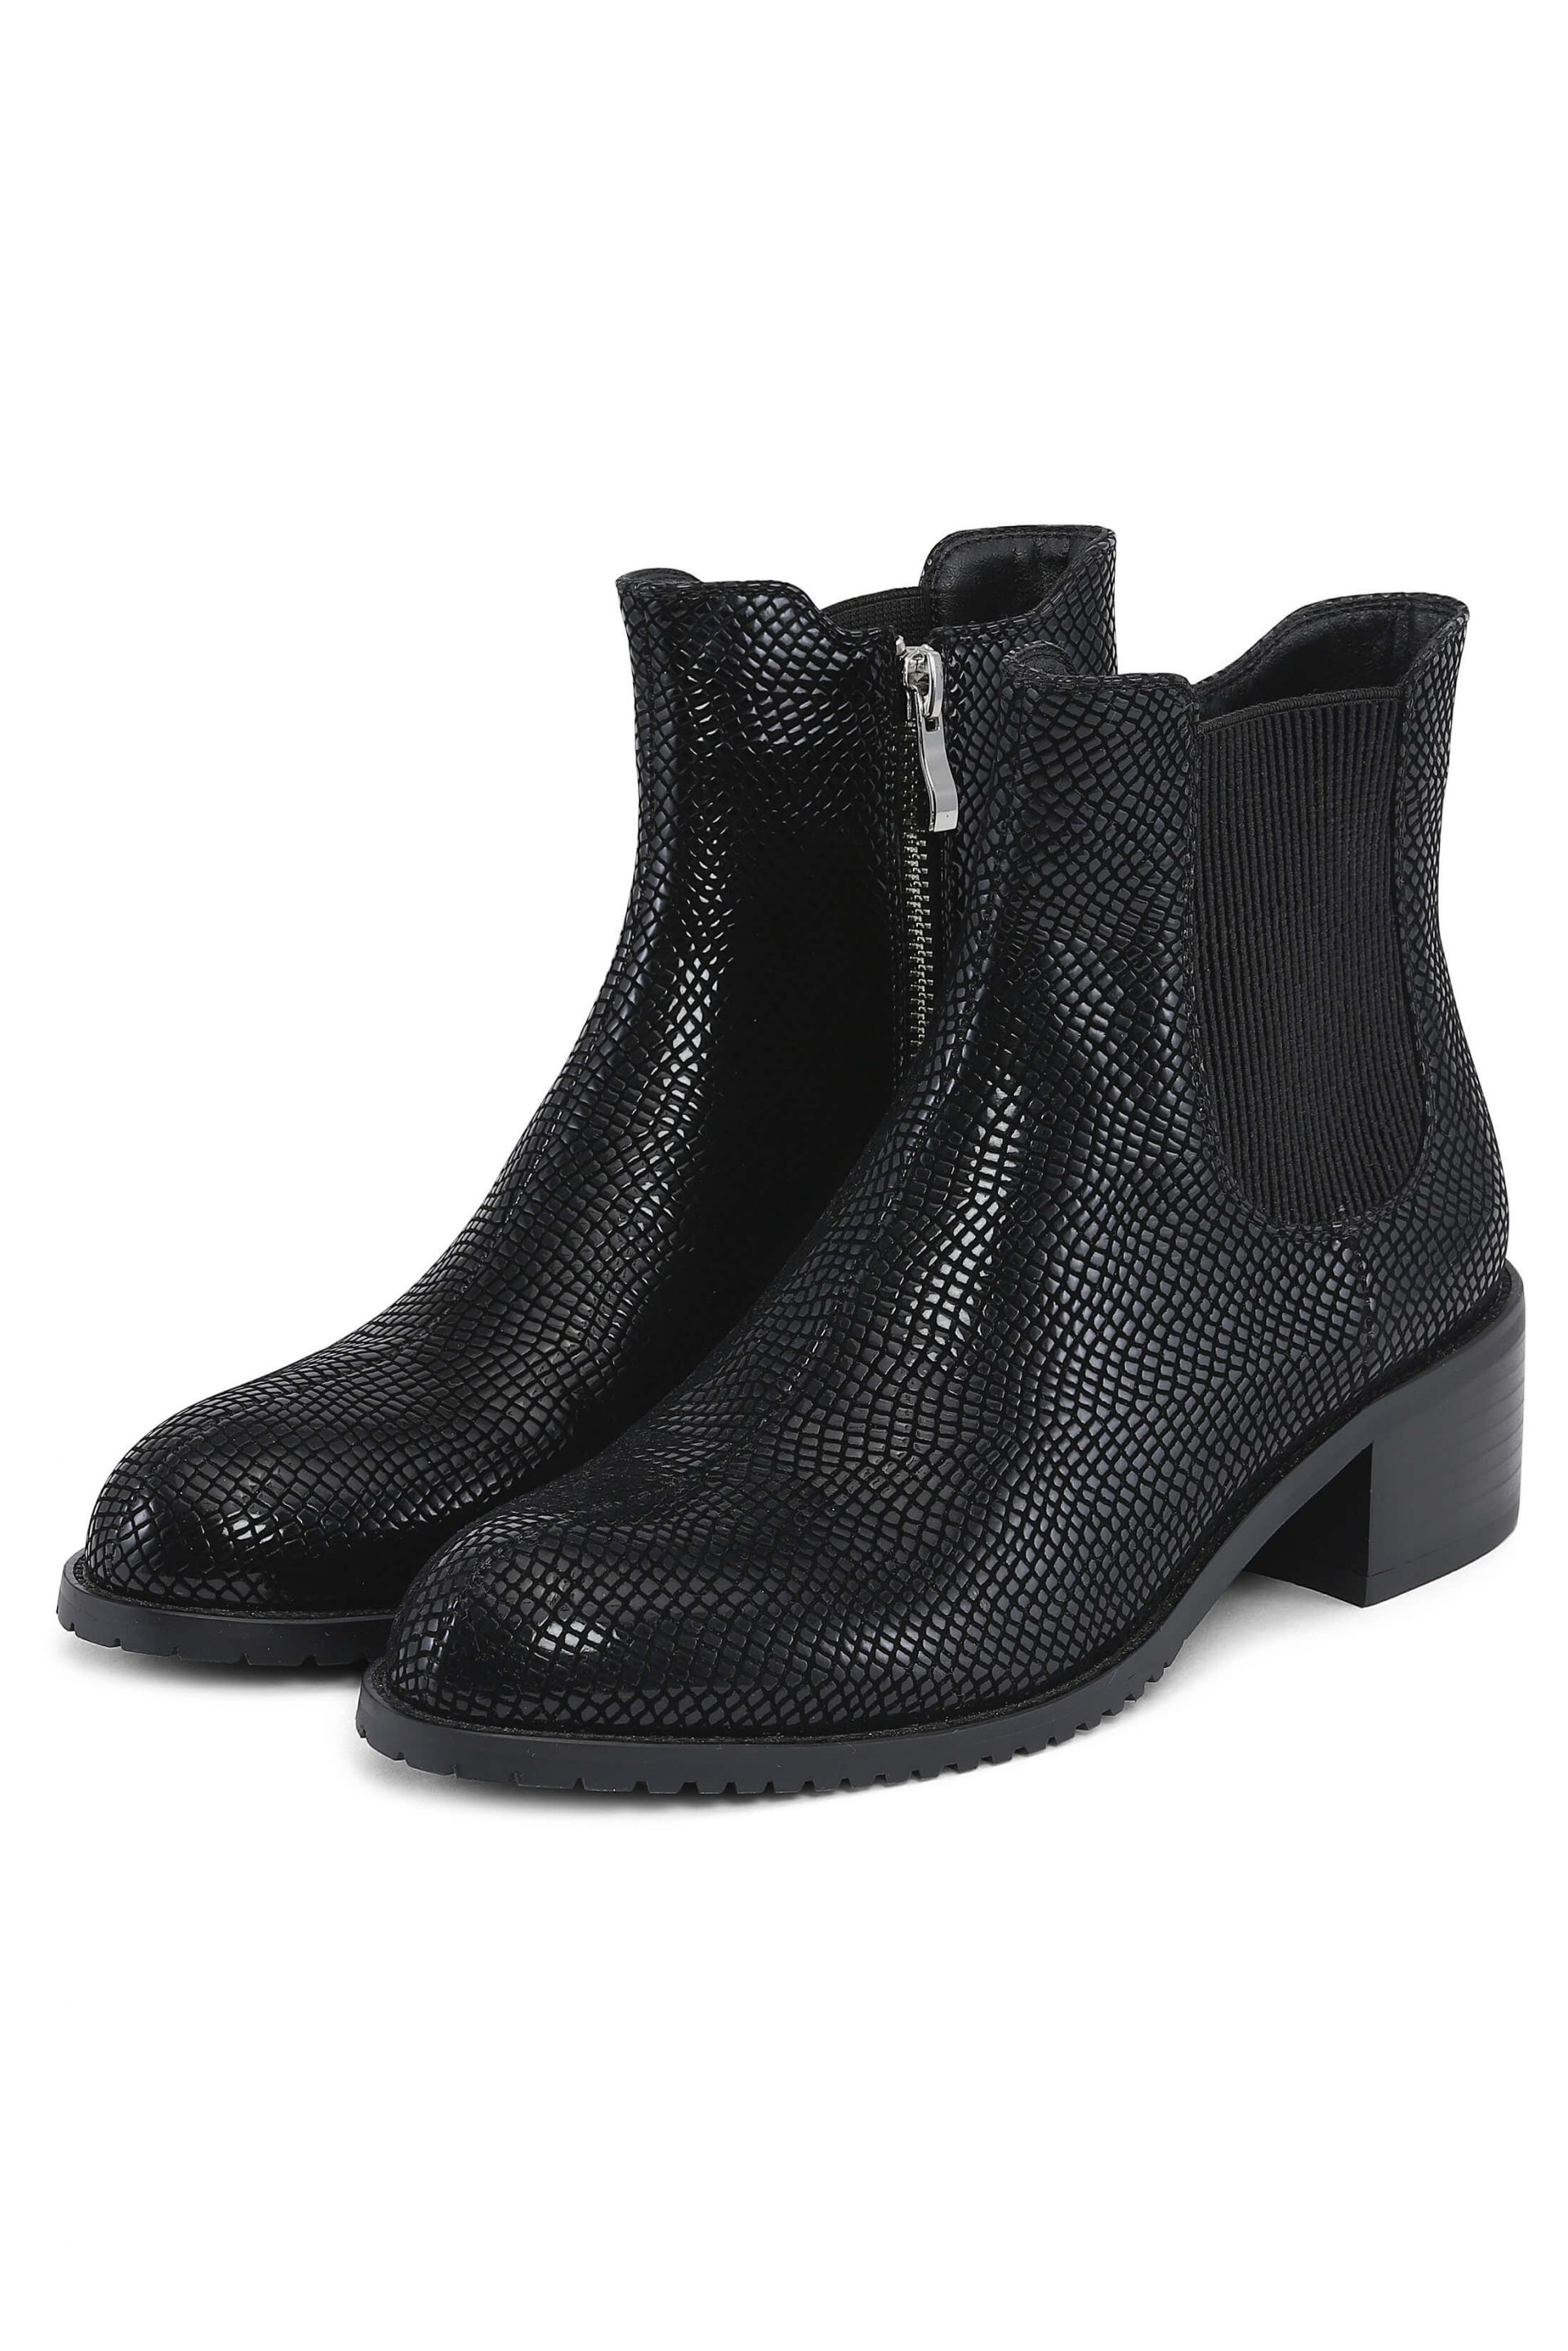 Structured beautiful ankleboots